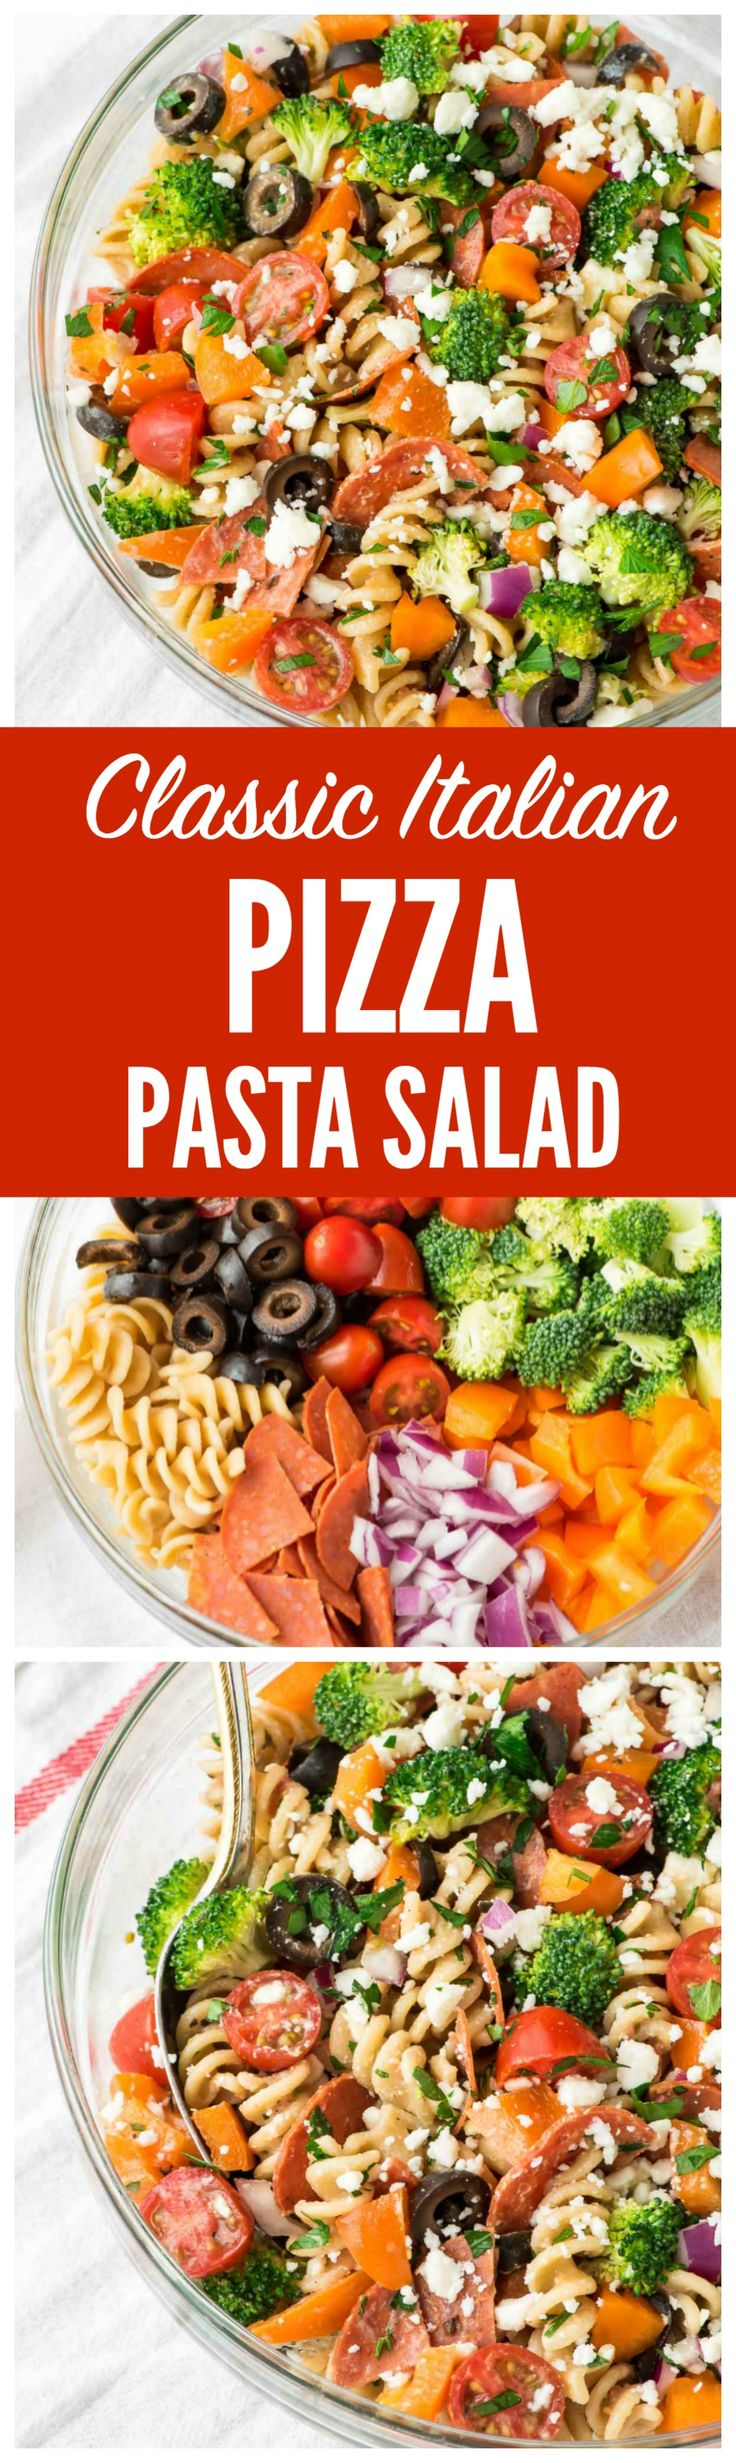 This Pizza Pasta Salad is the PERFECT pasta salad recipe. A fresh twist on classic Italian pasta salad made with real, simple ingredients, crunchy veggies, and lots of pepperoni and cheese. Everyone loves it and there are never any leftovers! Recipe via www.wellplated.com @wellplated